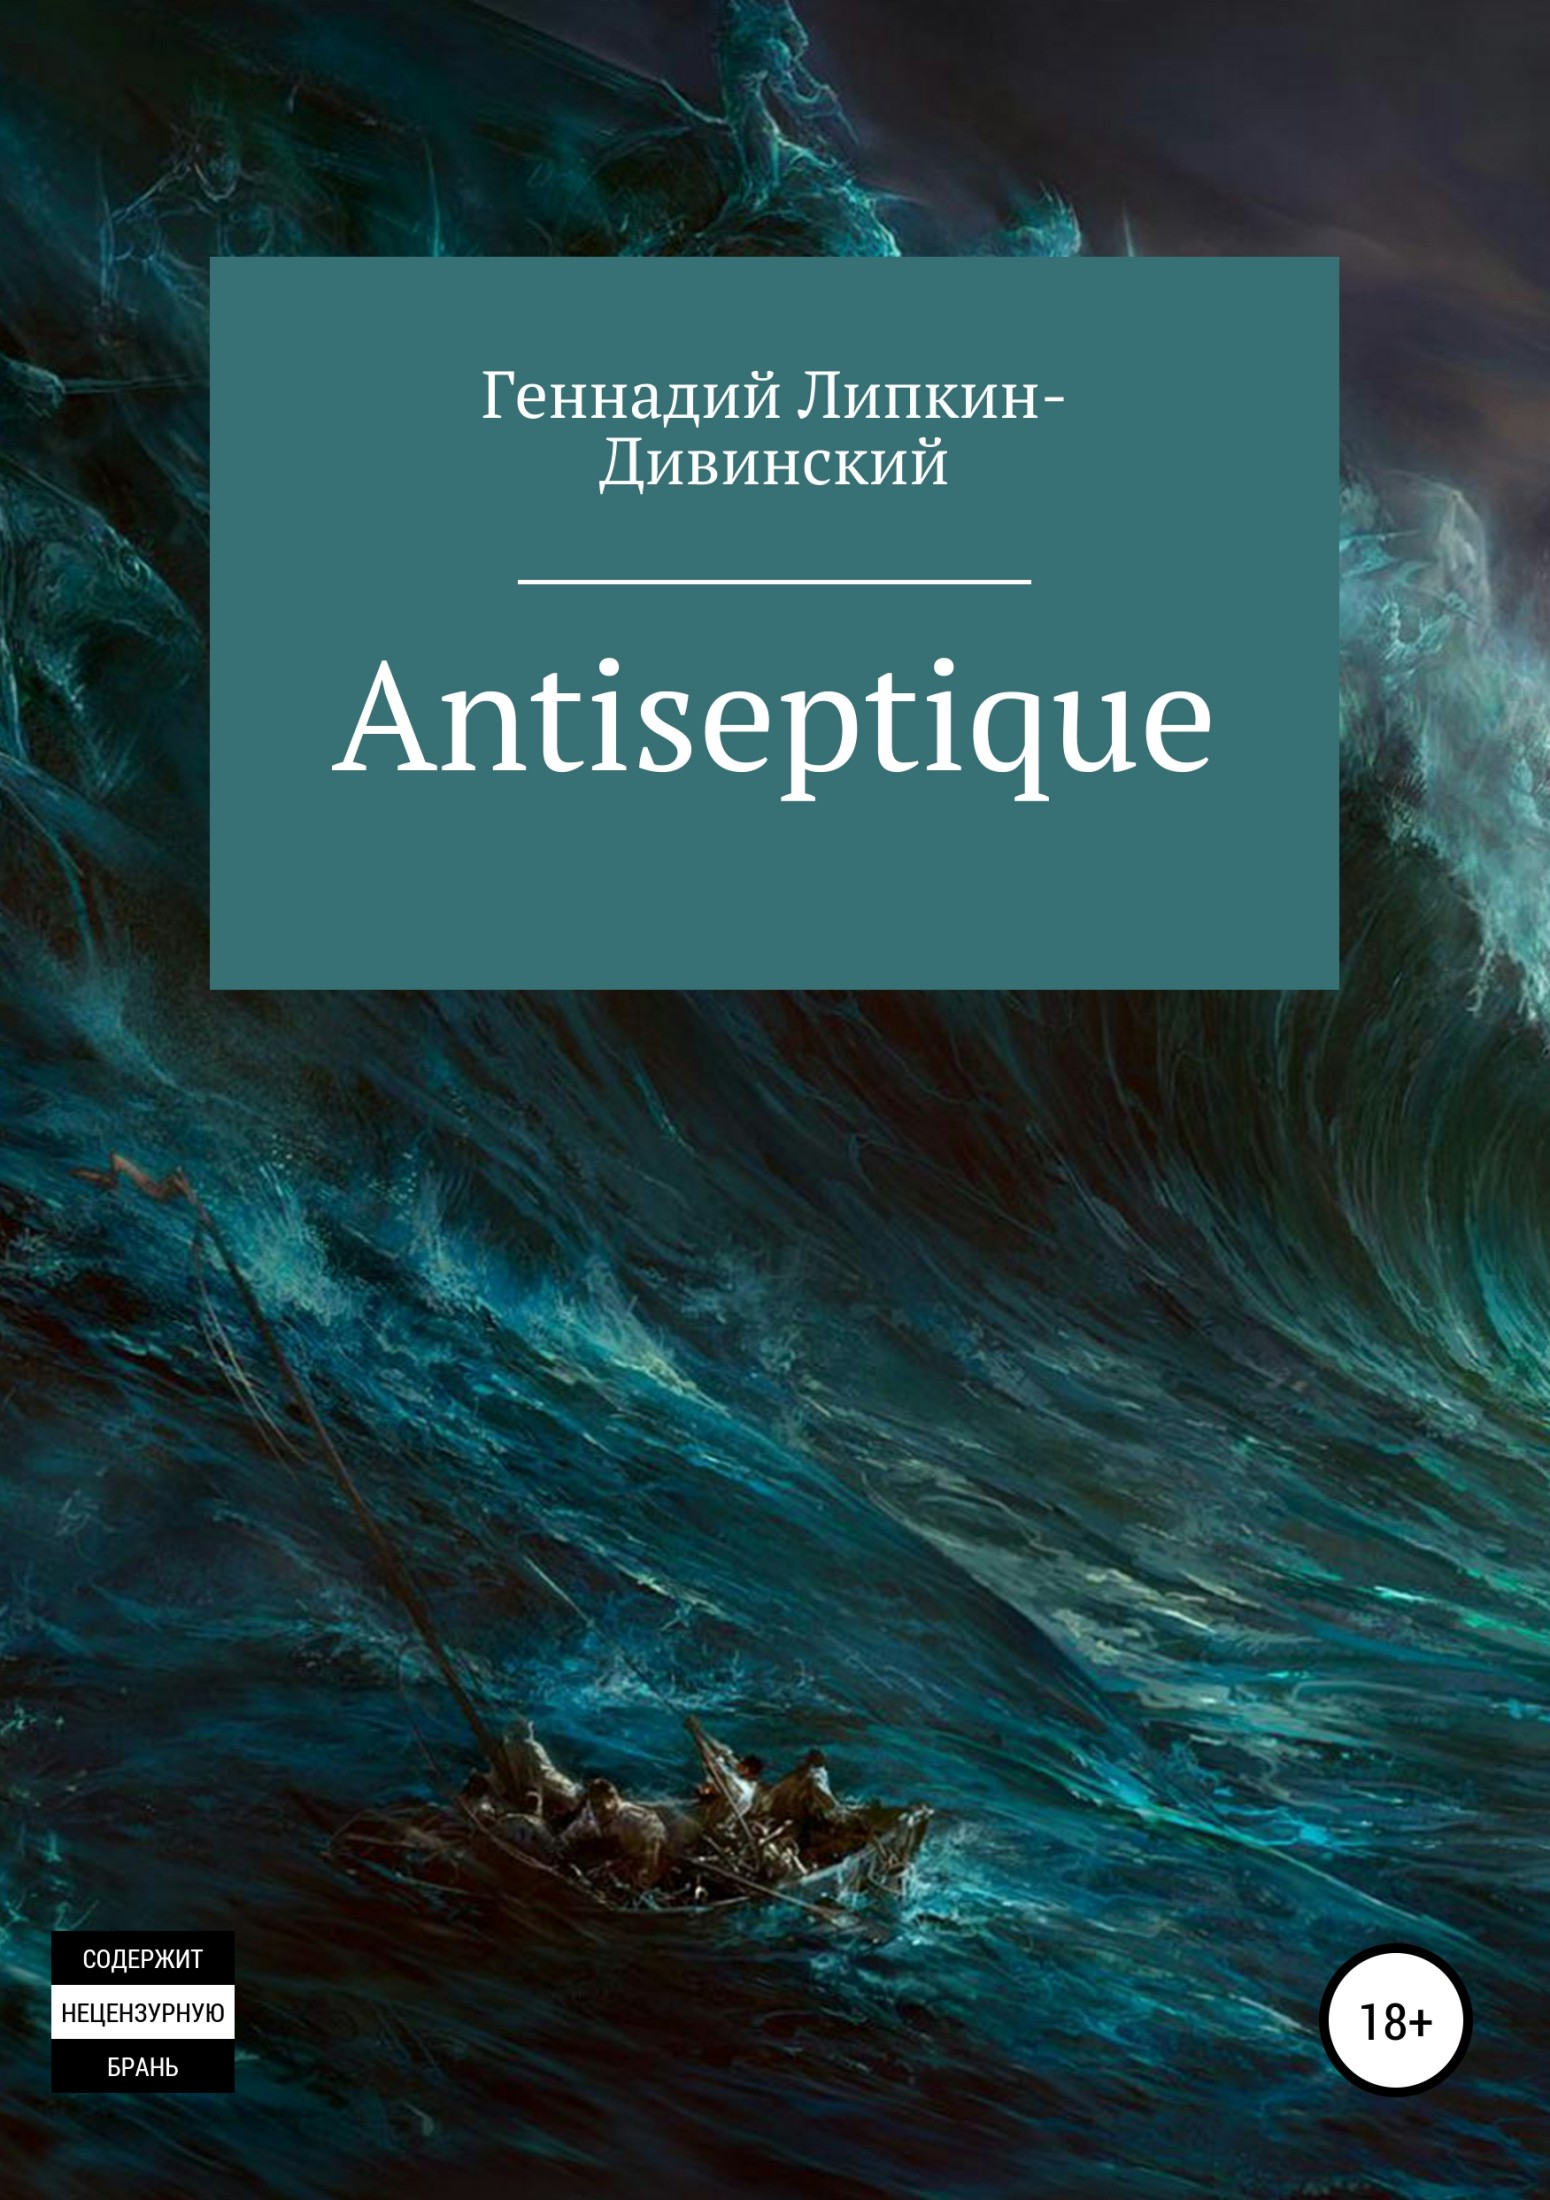 обложка книги Antiseptique. Сборник стихотворений